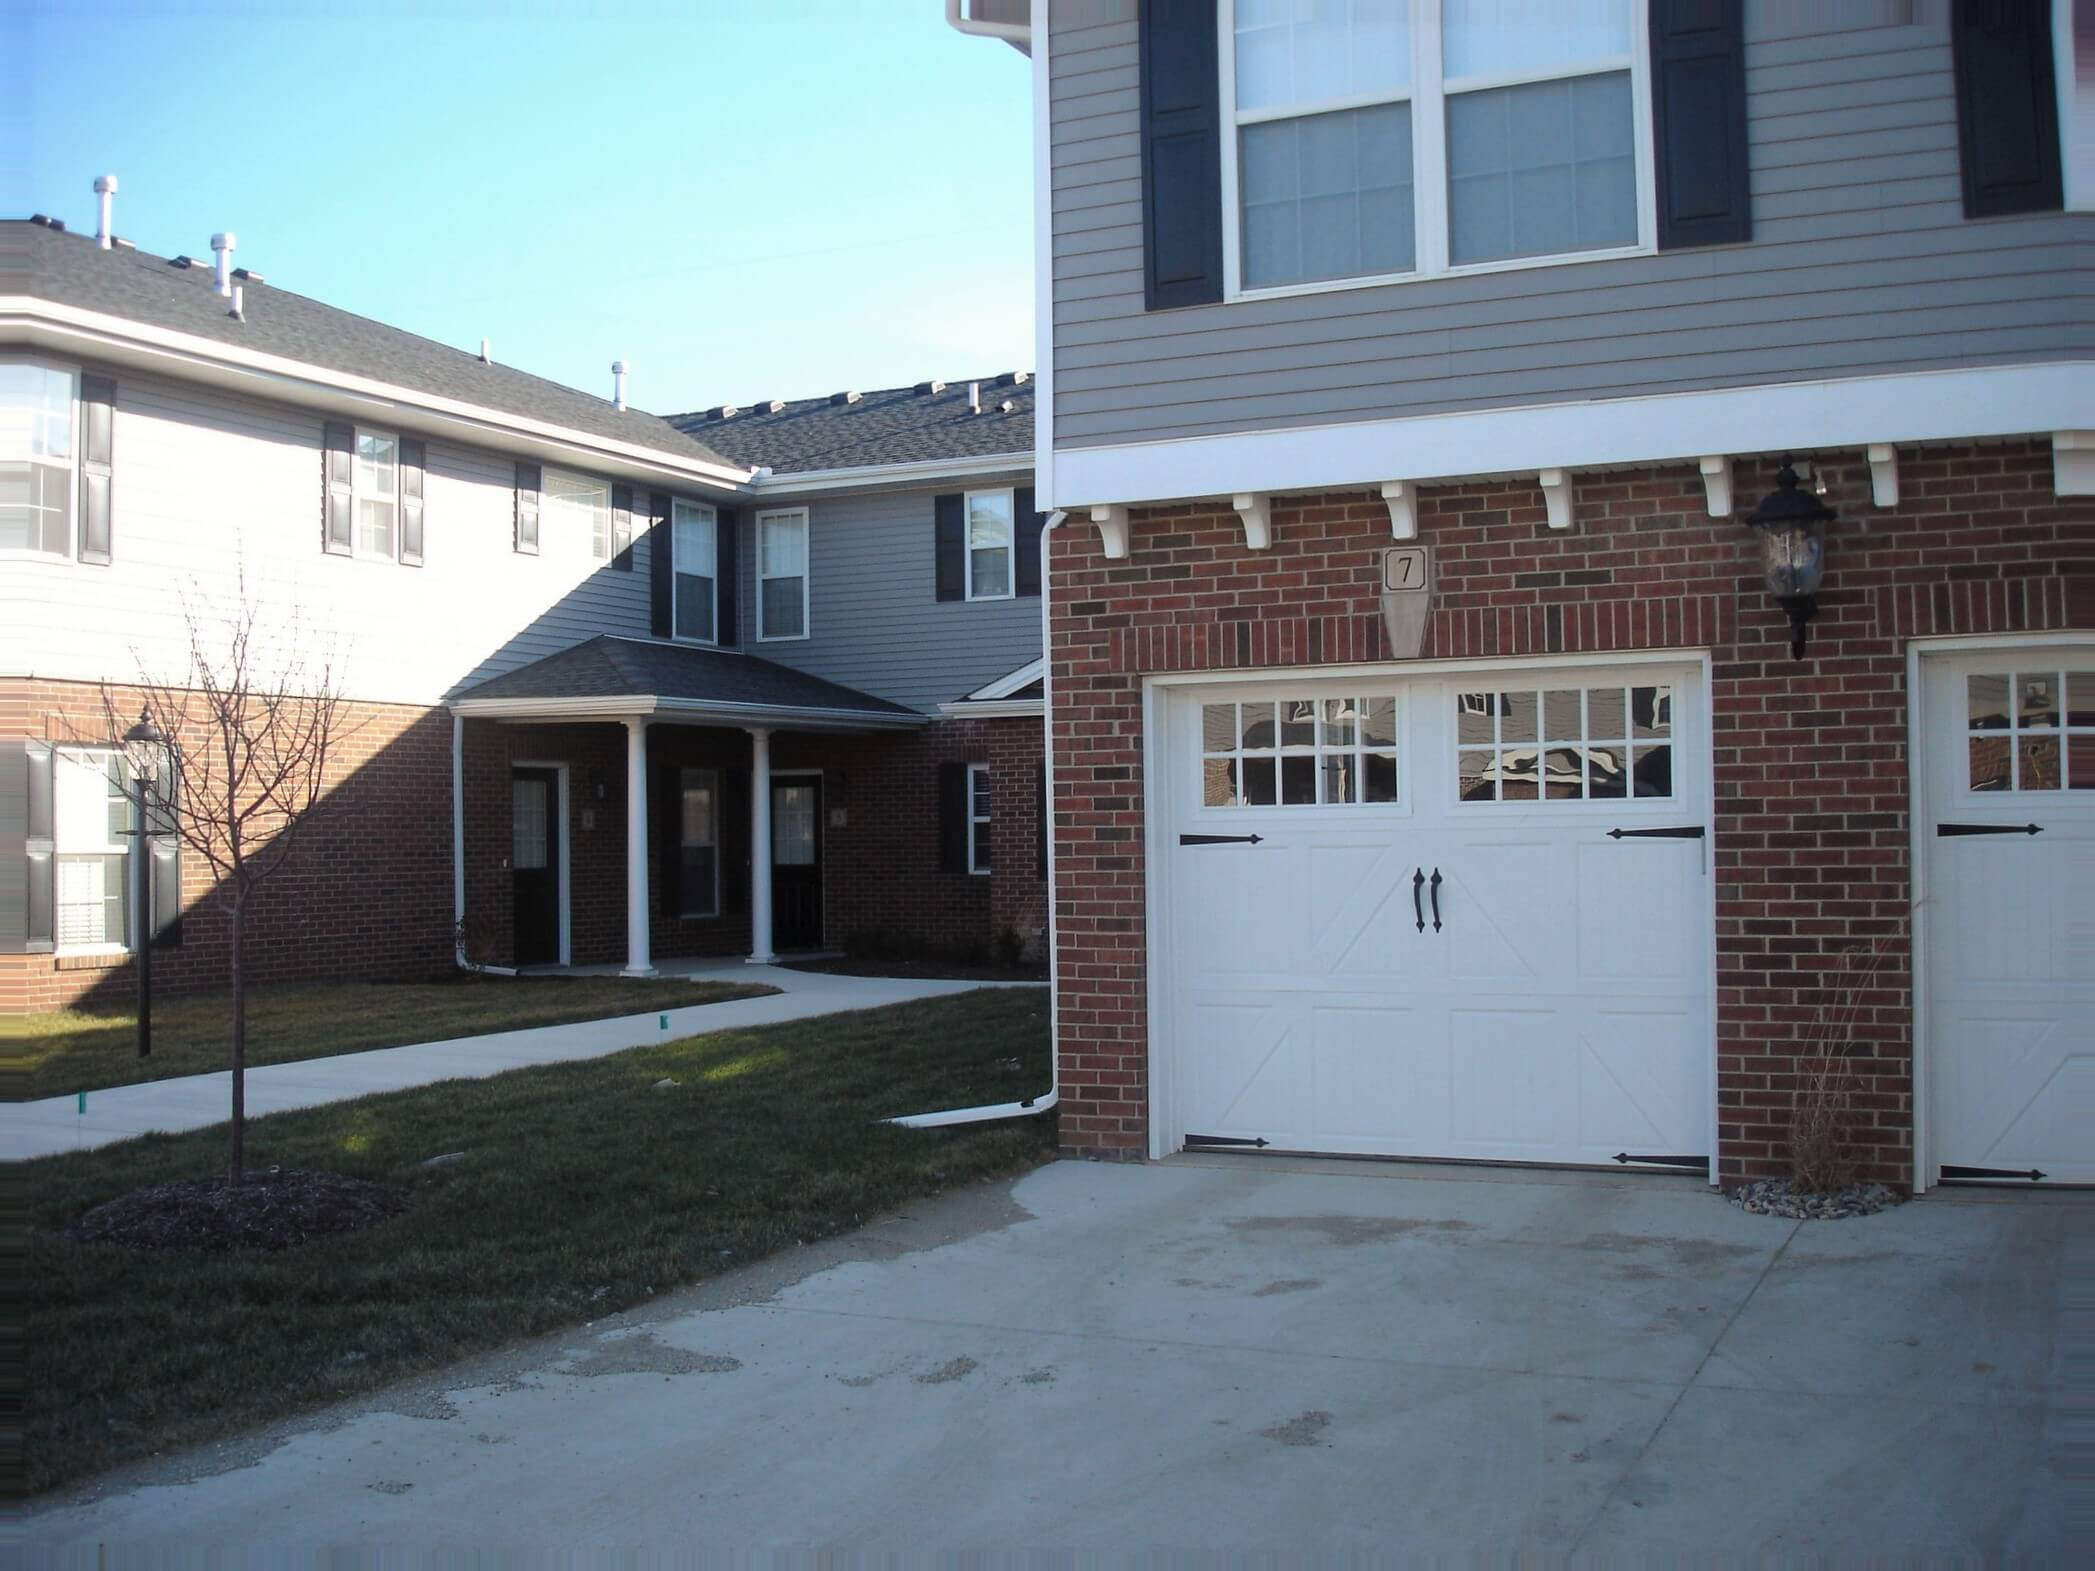 103 Portsmouth 7 Savoy Il 61874 Condo For Rent Savoy Champaign